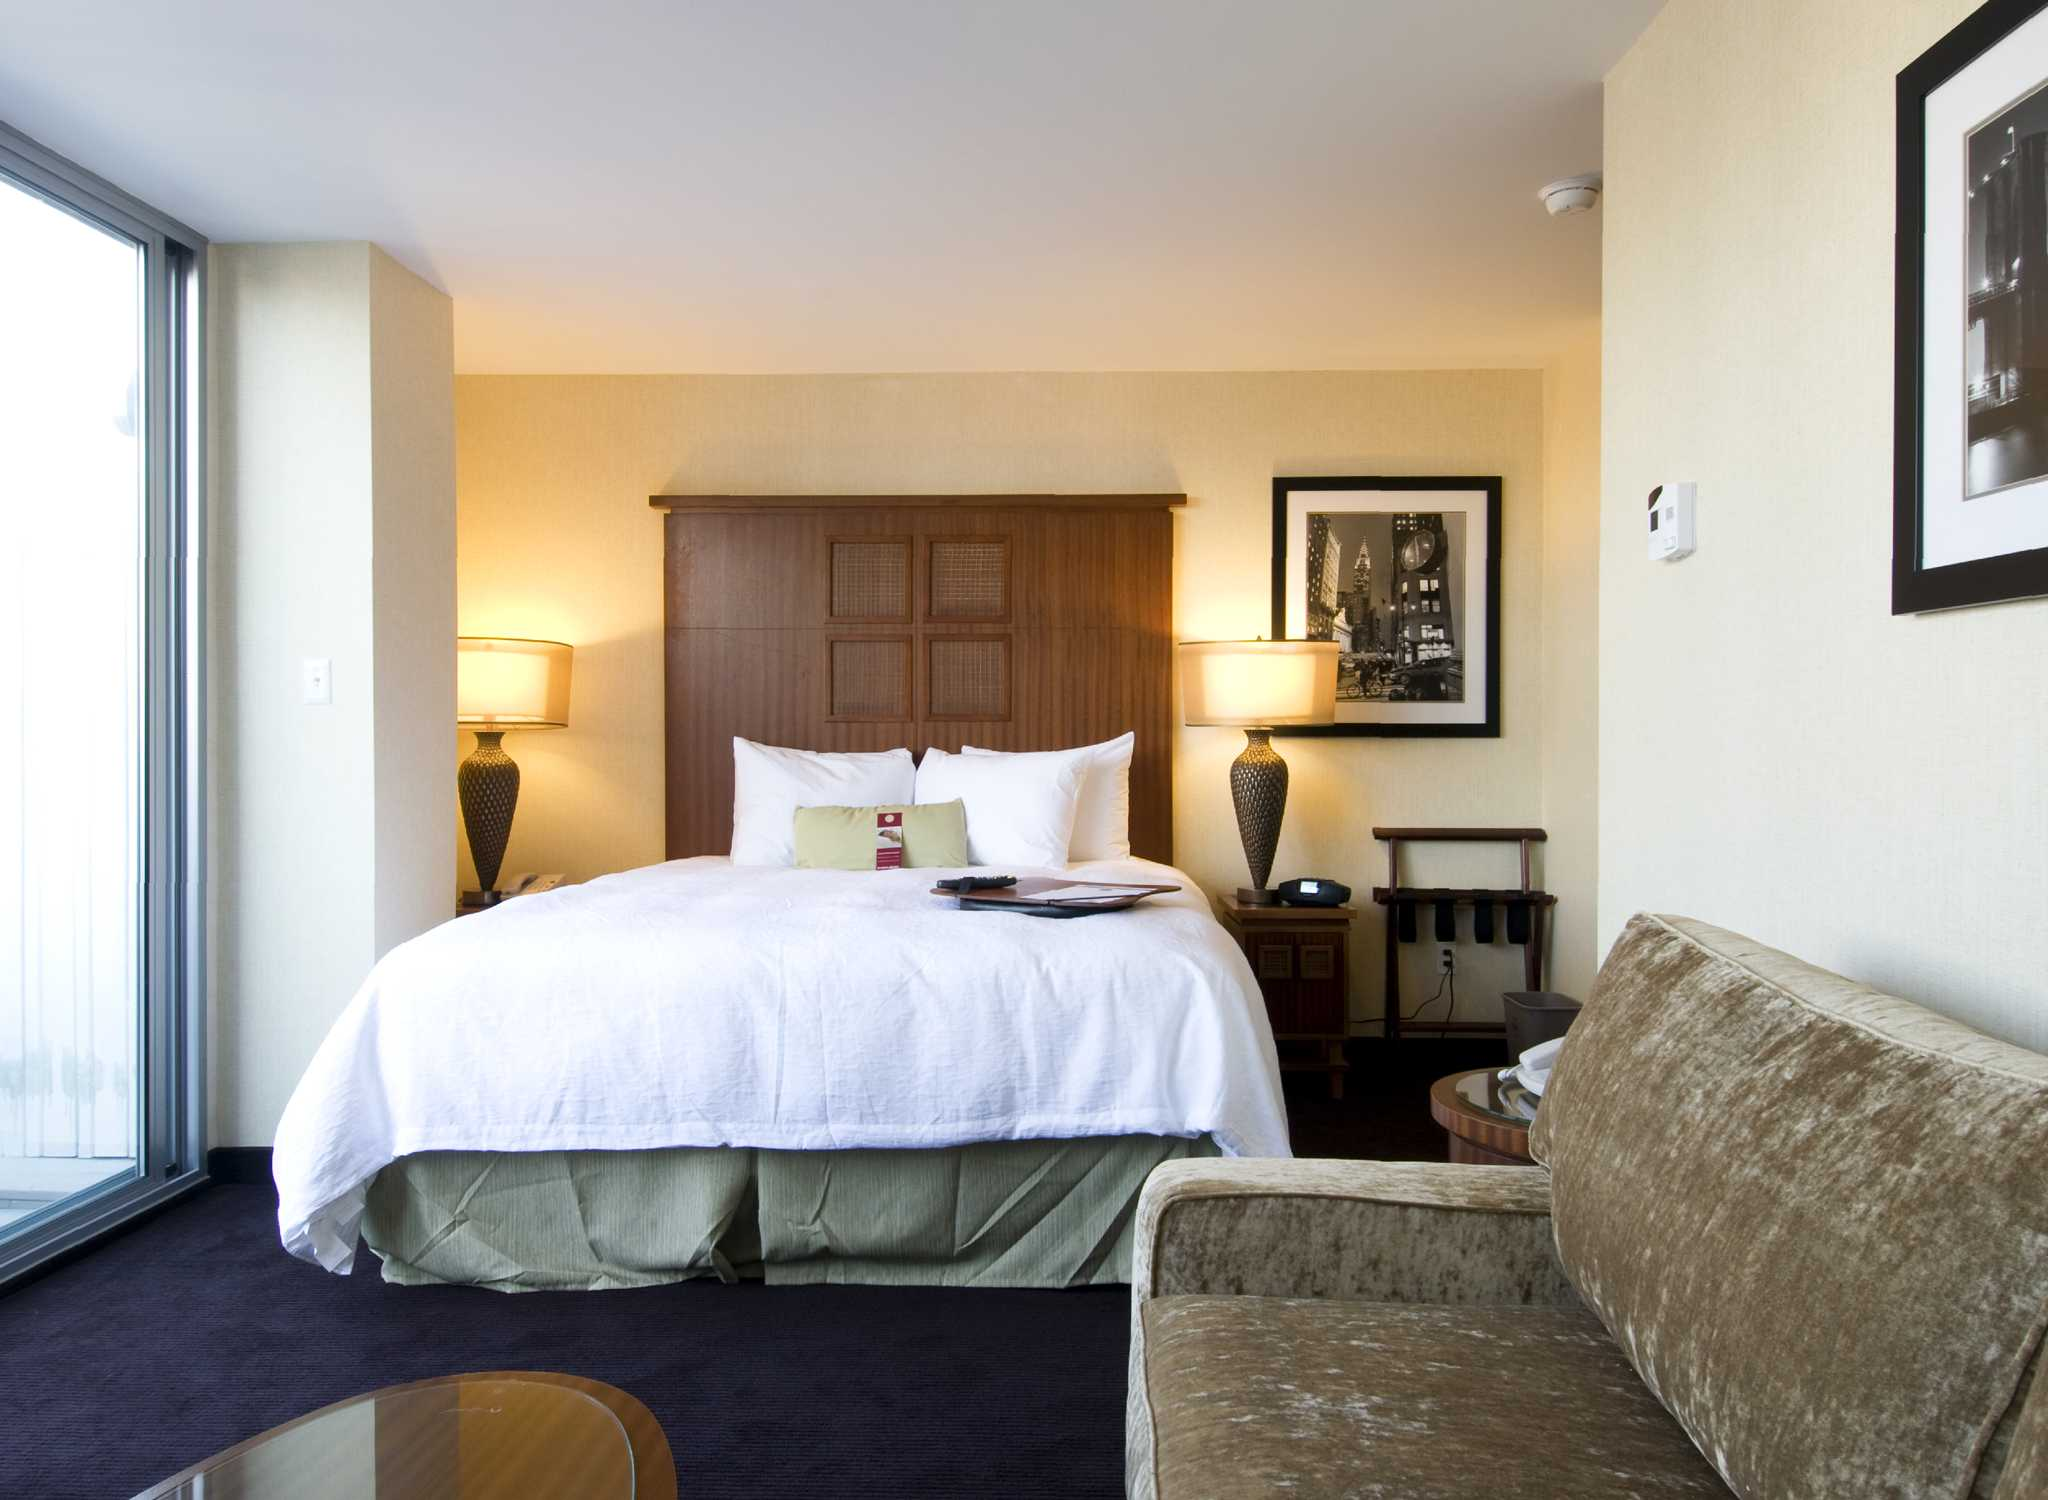 The Rooms at Hampton Inn Manhattan Come Rated Very Highly by Guests Because of Their Use of Space and Large Ceilings